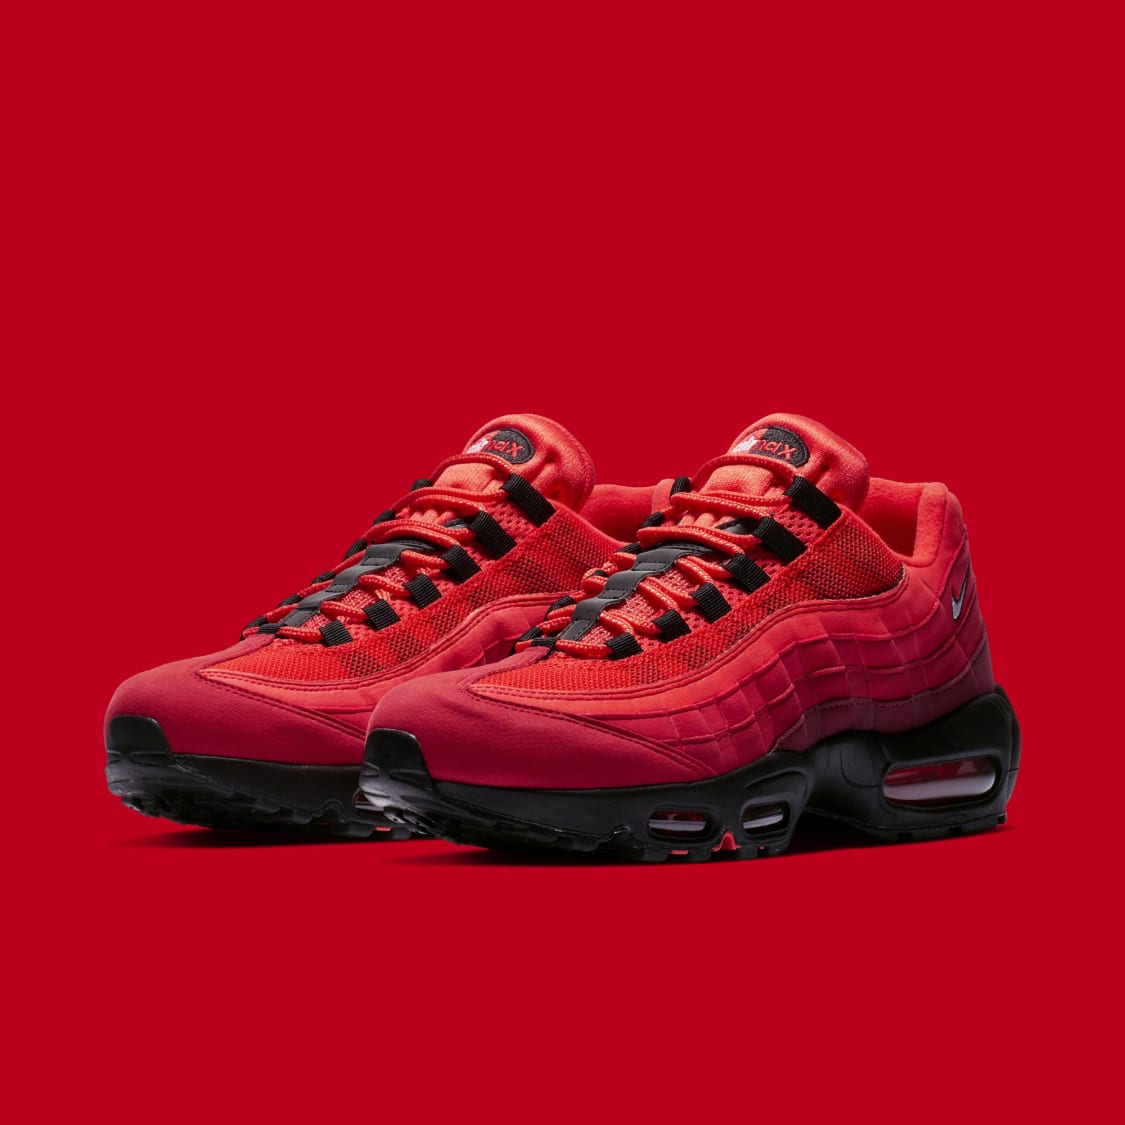 843cc717dd5485 Nike Air Max 95  Habanero Red Black-White  AT2865-600 Release Date ...